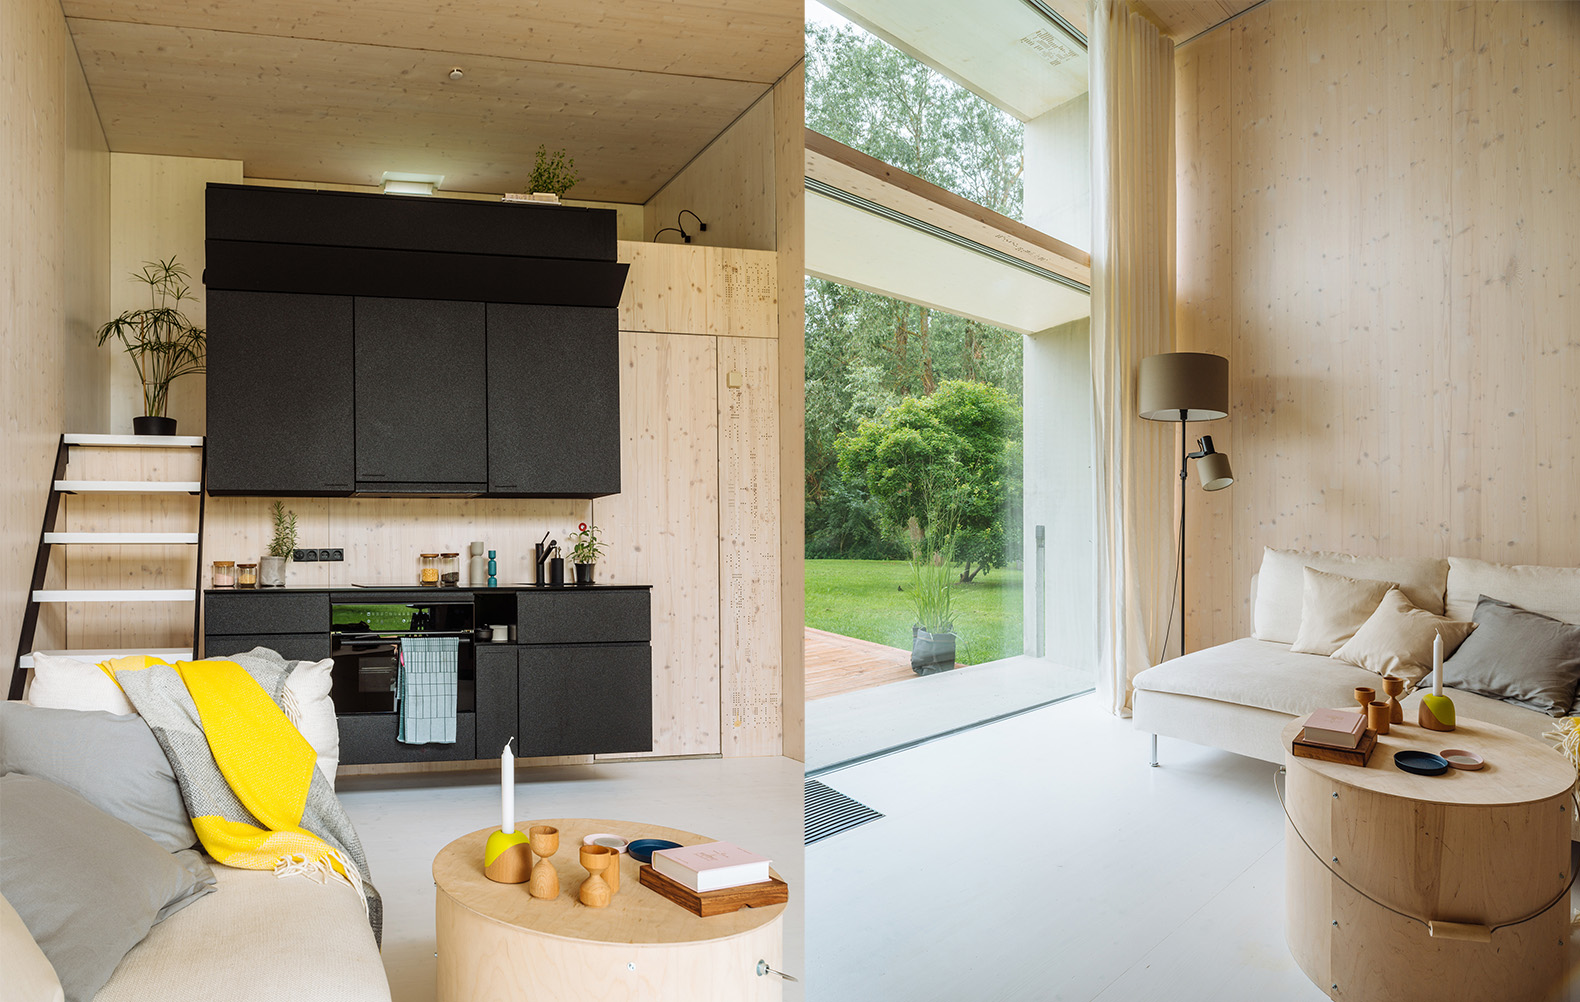 KODA is a tiny solar-powered house that can move with its owners Portable Home Design Inside on mini homes inside, cool homes inside, metal homes inside, design homes inside, simple homes inside, rv homes inside, modular homes inside, mobile homes inside, clean homes inside, compact homes inside, modern homes inside, small homes inside, beautiful homes inside, cute homes inside, green homes inside, smart homes inside, wood homes inside,